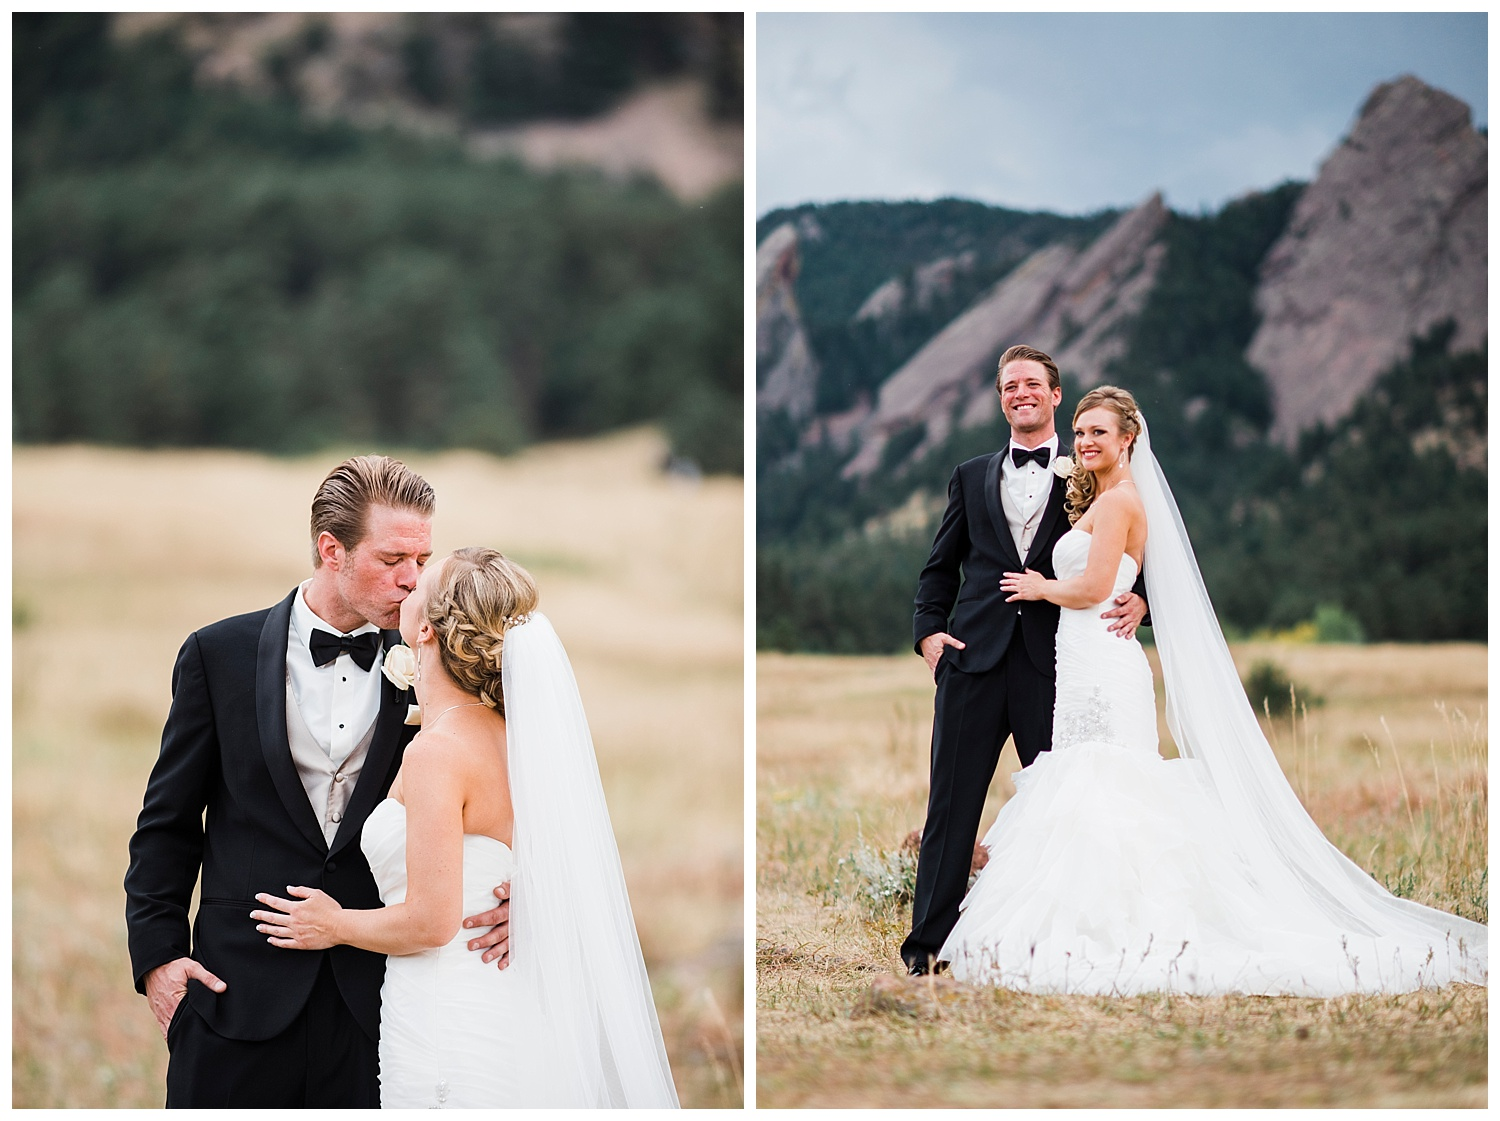 Wedgewood_Boulder_Creek_Wedding_Venue_Colorado_Photographer_Apollo_Fields_012.jpg